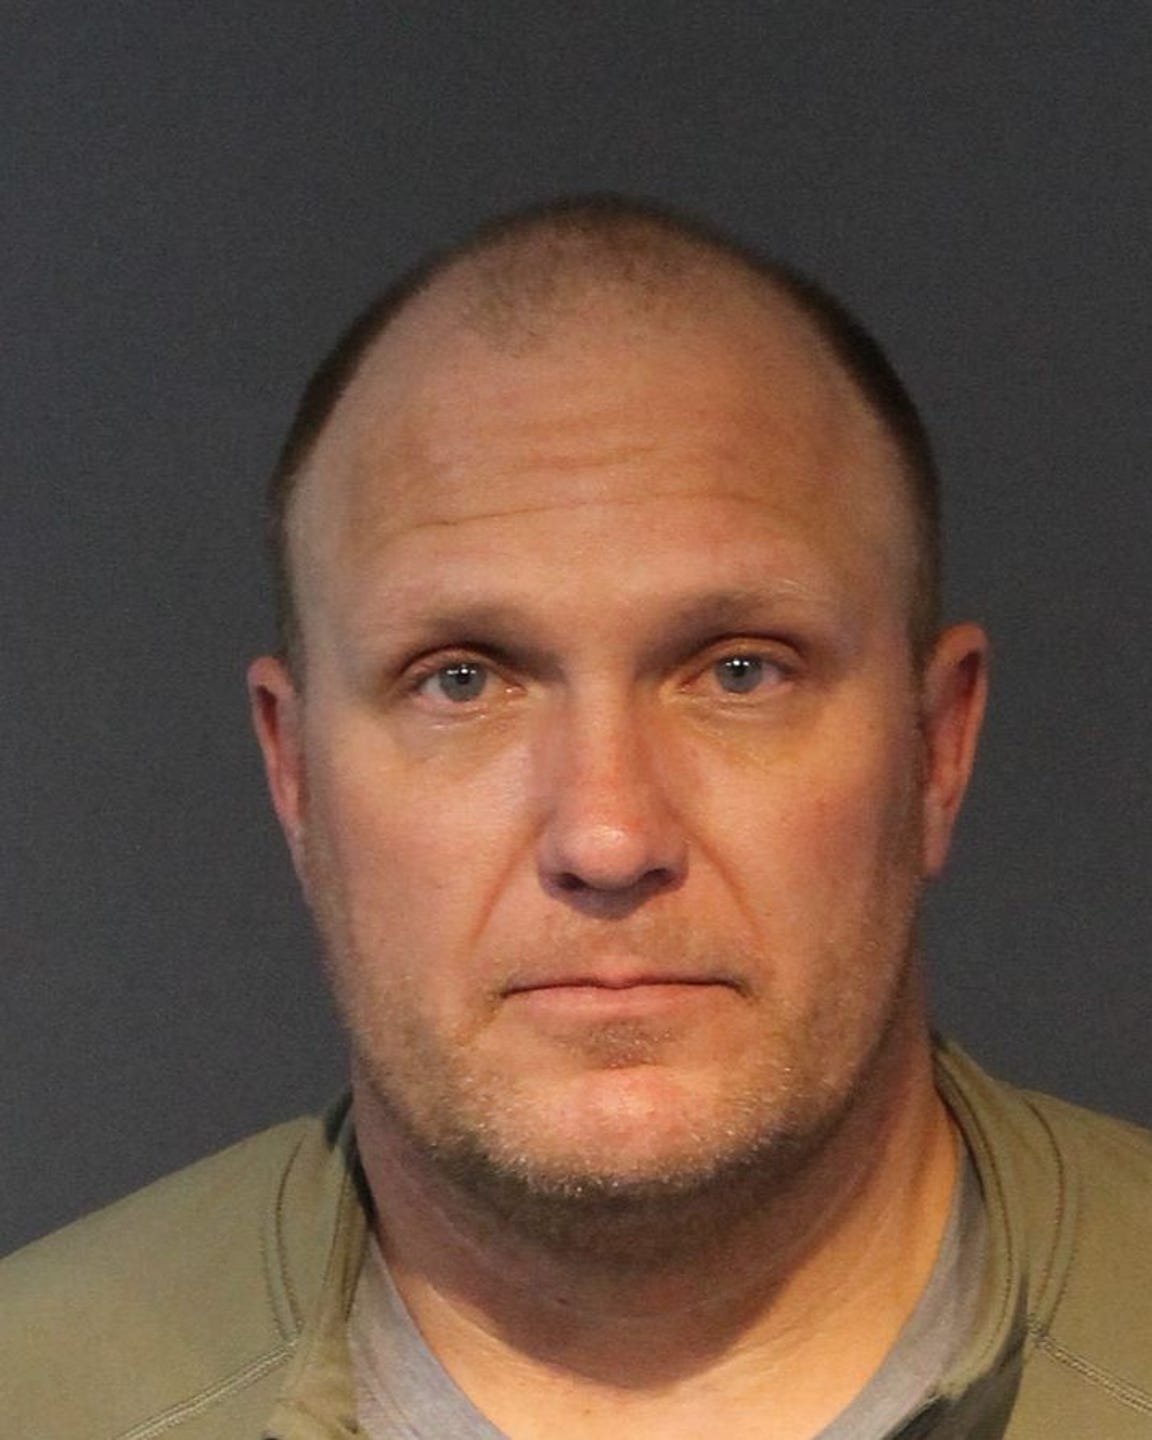 The booking photo of Eric Justin Christiansen, 44. The former Nevada Department of Transportation employee was found guilty of felony DUI in March after he drove a state-owned snowplow over the centerline of the Mt. Rose Highway while high on meth, hitting Alan McMahon nearly head-on.